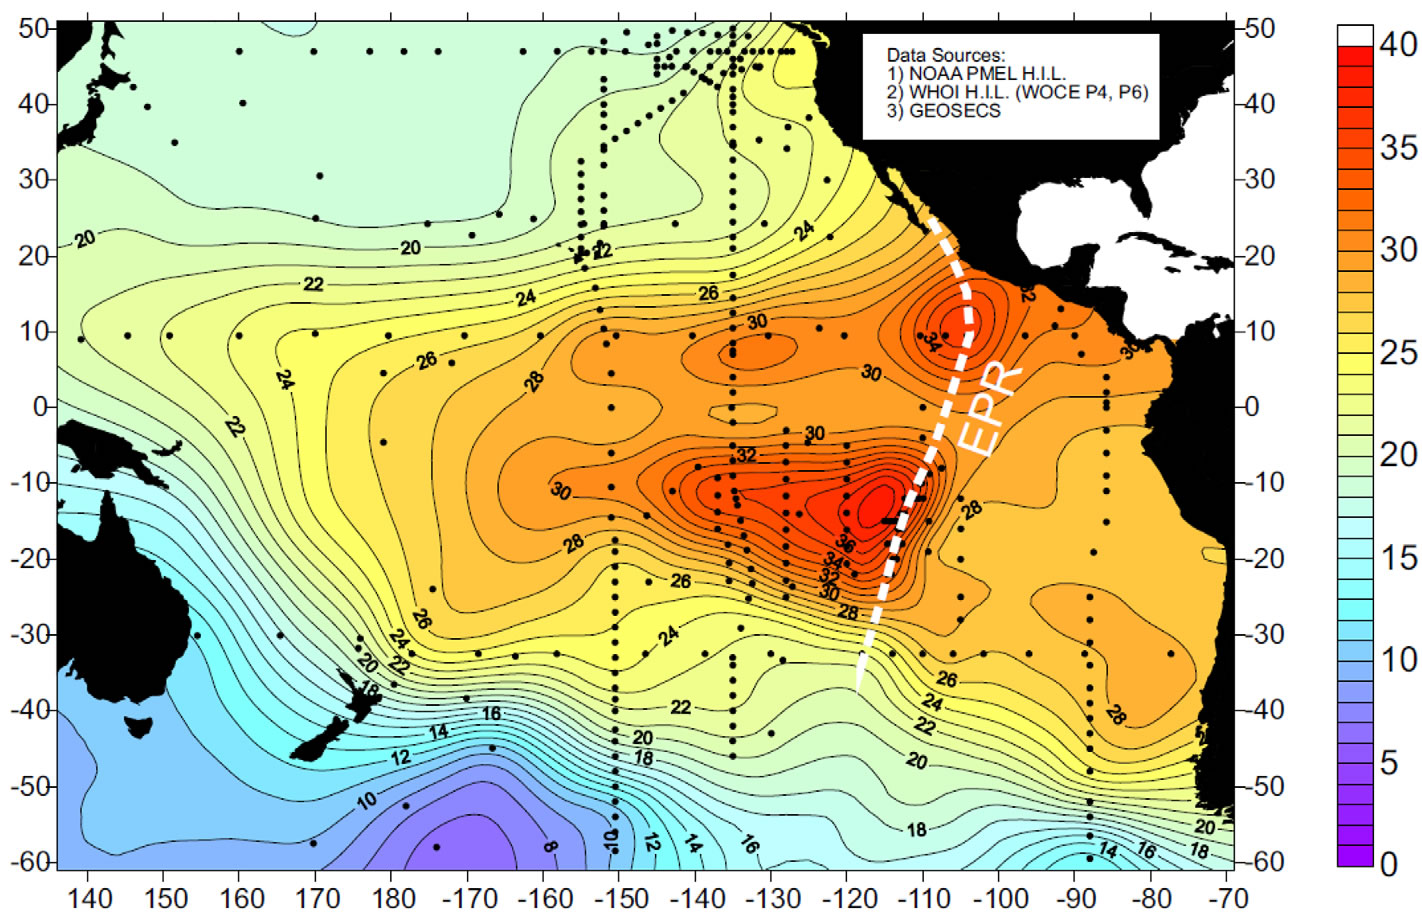 pacific ocean depth map Evolution Of The South Pacific Helium Plume Over The Past Three pacific ocean depth map